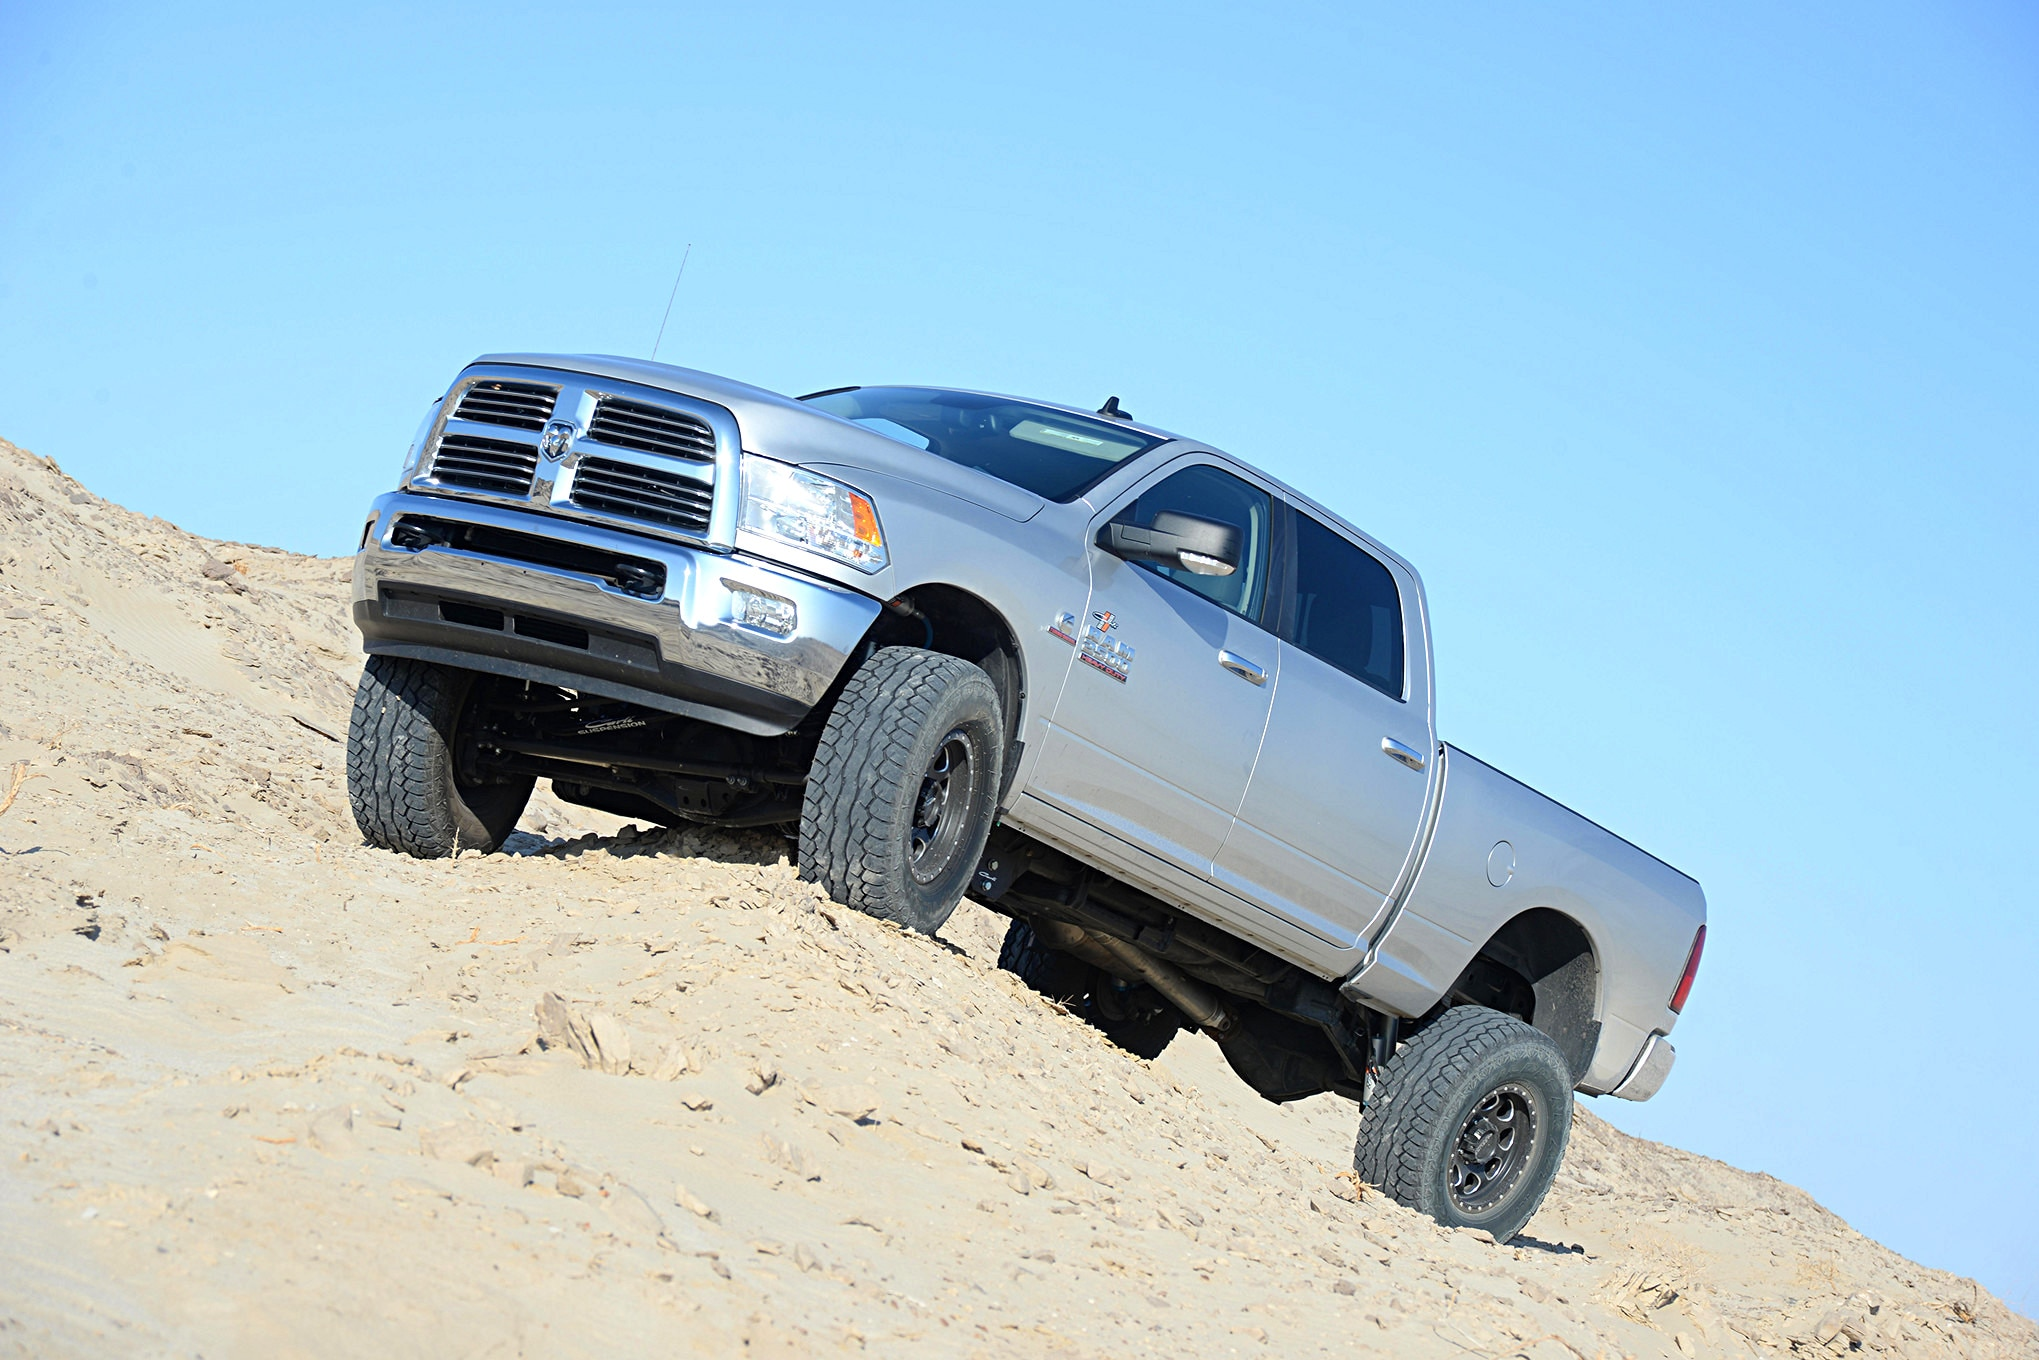 2014 Ram Cummins 2500 Suspension Review: Carli Pintop 2.5 Lift System